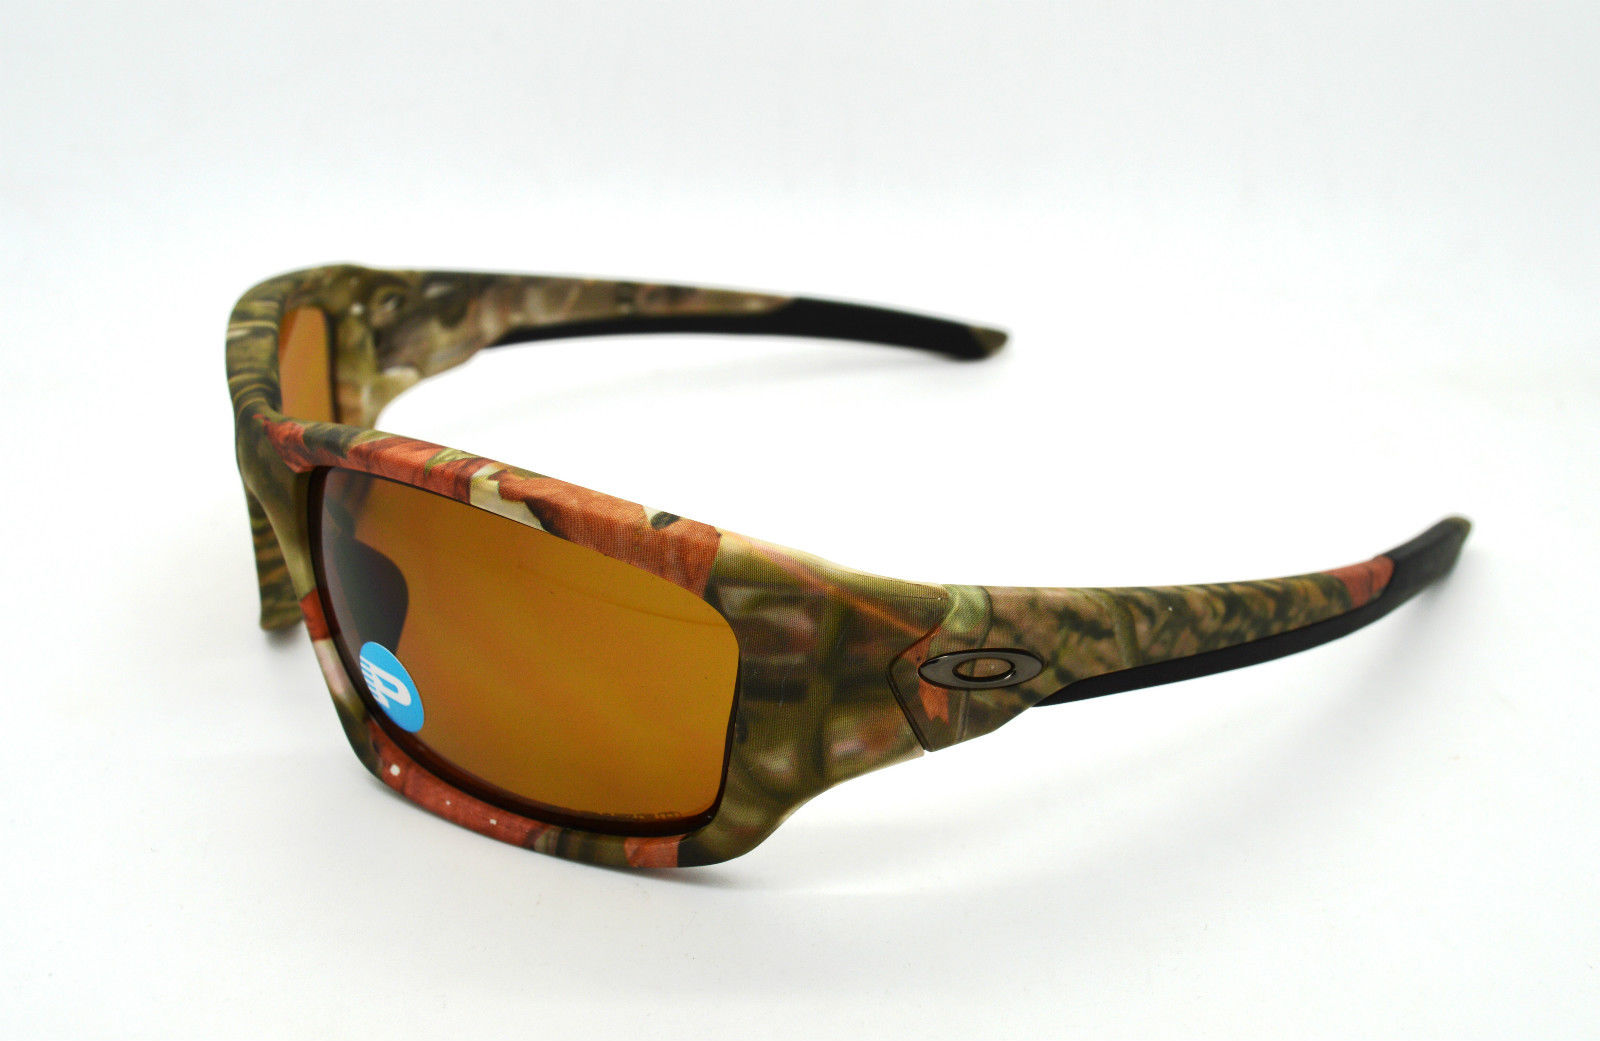 225c68e59cd0 Camo Oakley Sunglasses Ebay Real